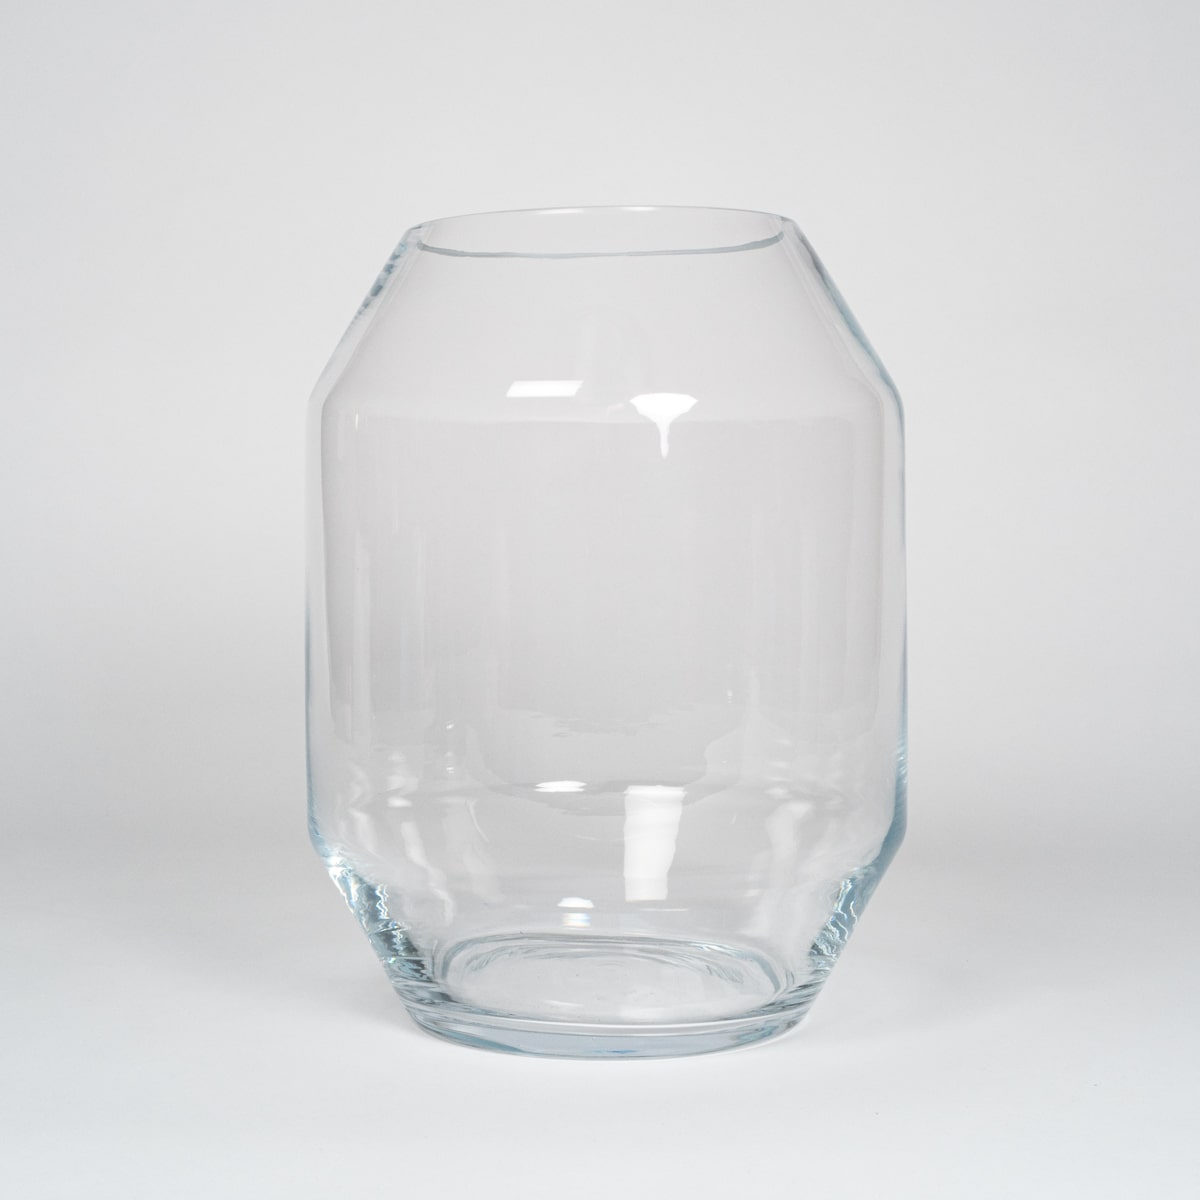 Bloom Flower Delivery | Large Clear Glass Geometric Vase & Storm Lantern